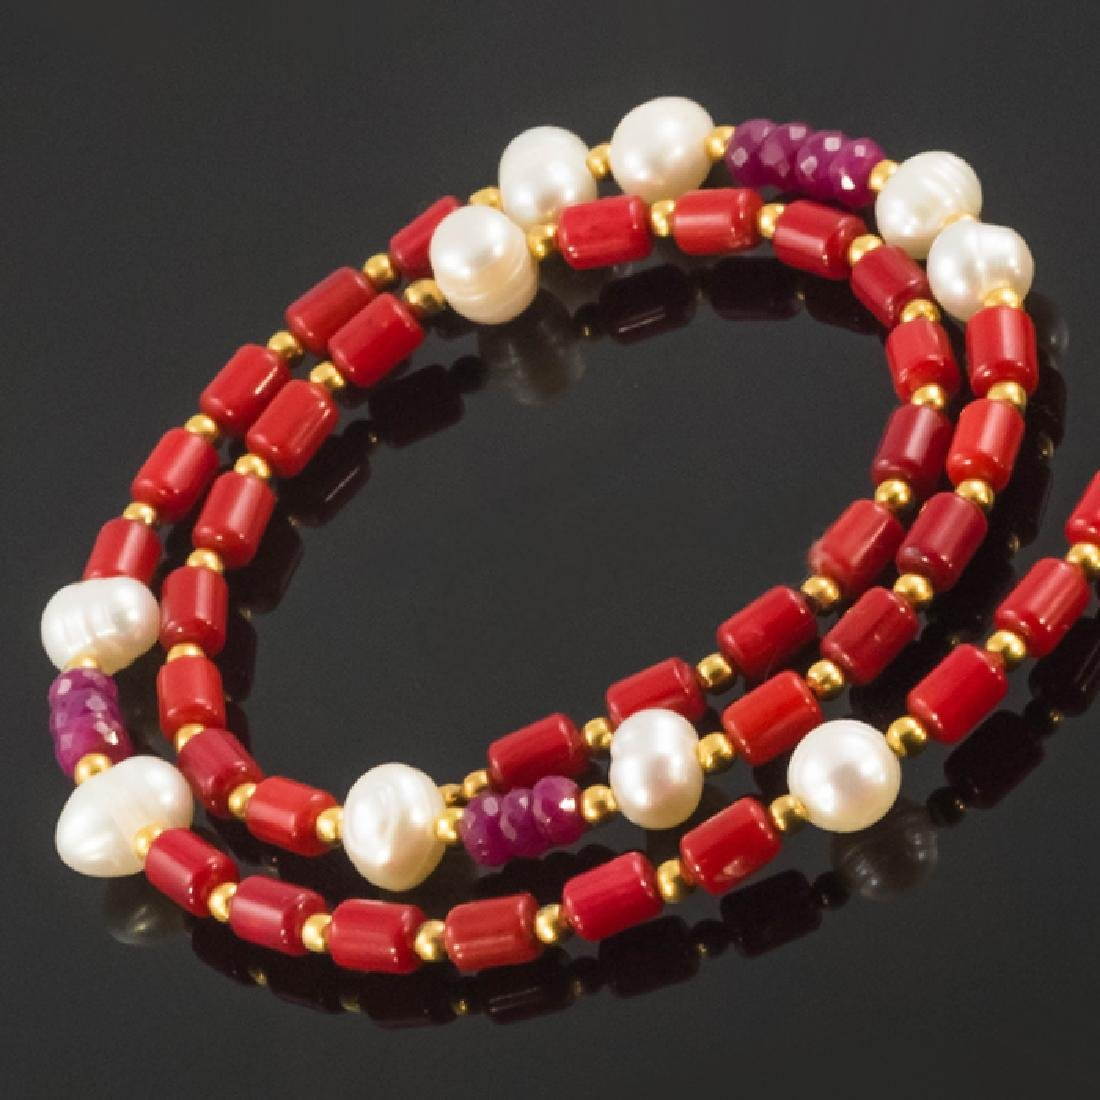 Coral Necklace with Pearls and Rubies 9.8ctw